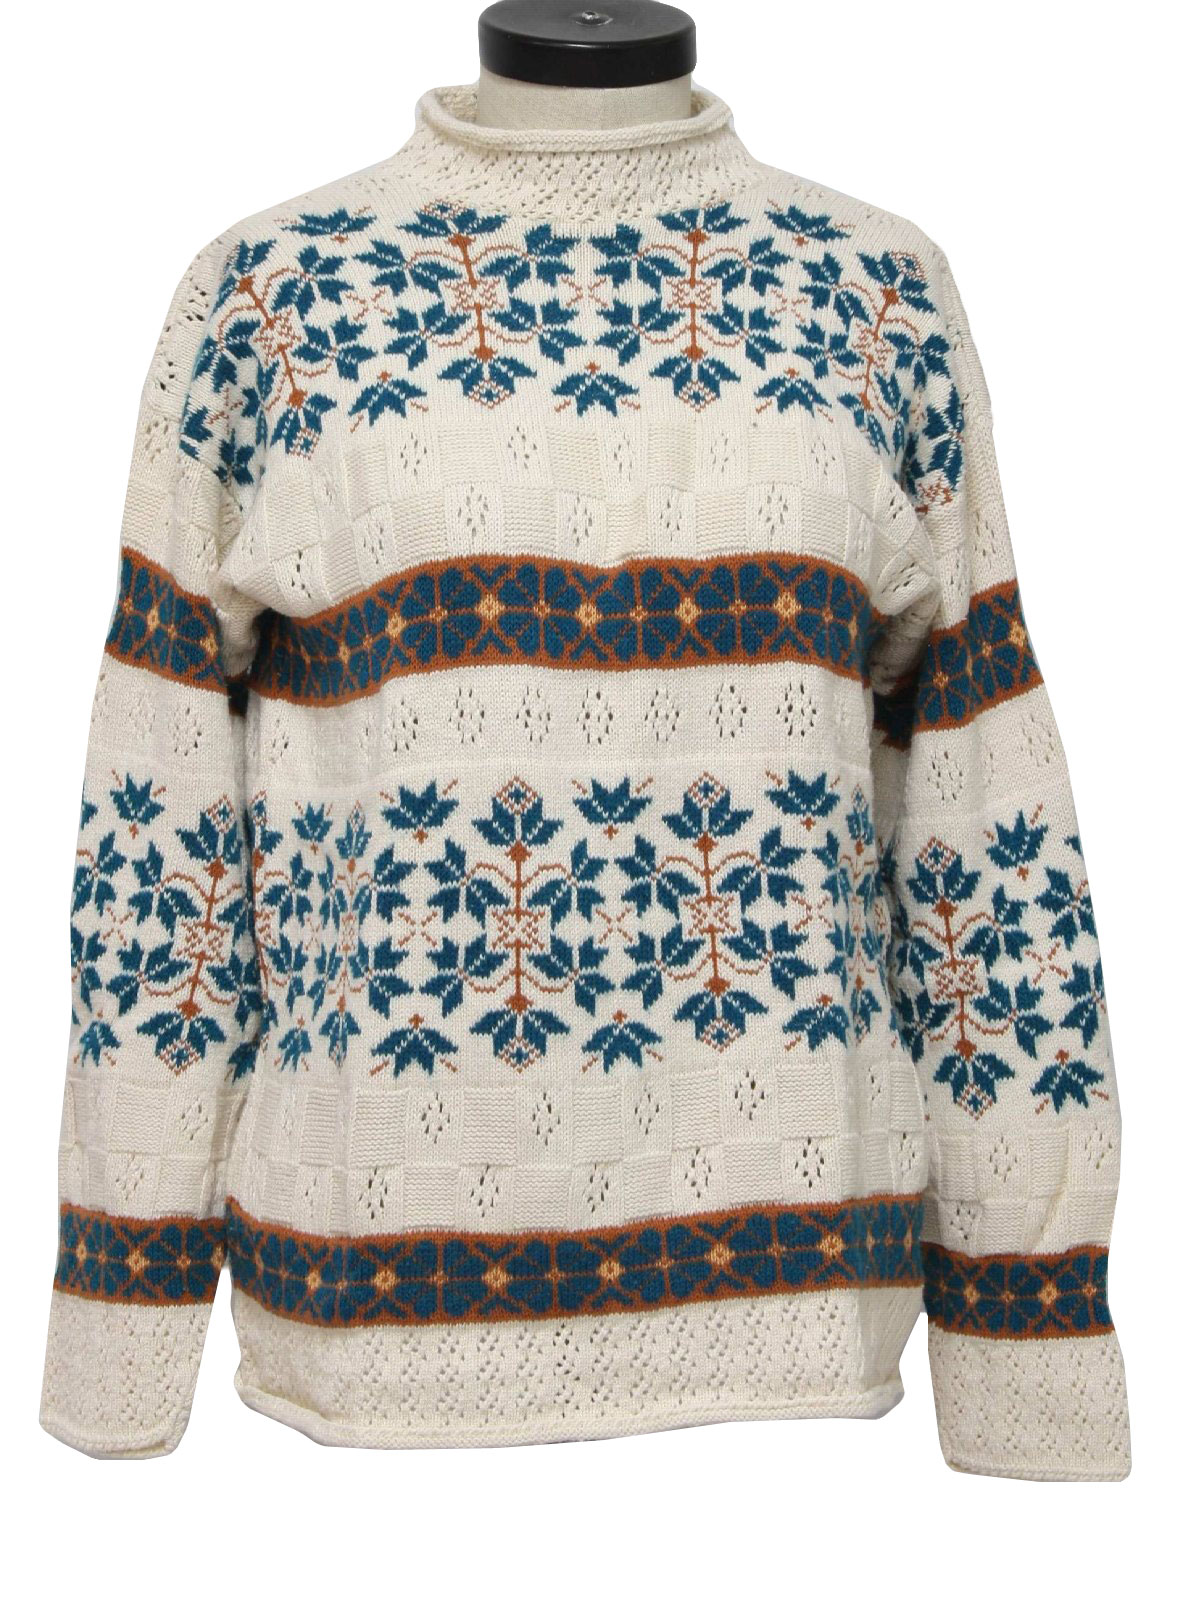 Vintage Turning Point 90 S Sweater 90s Turning Point